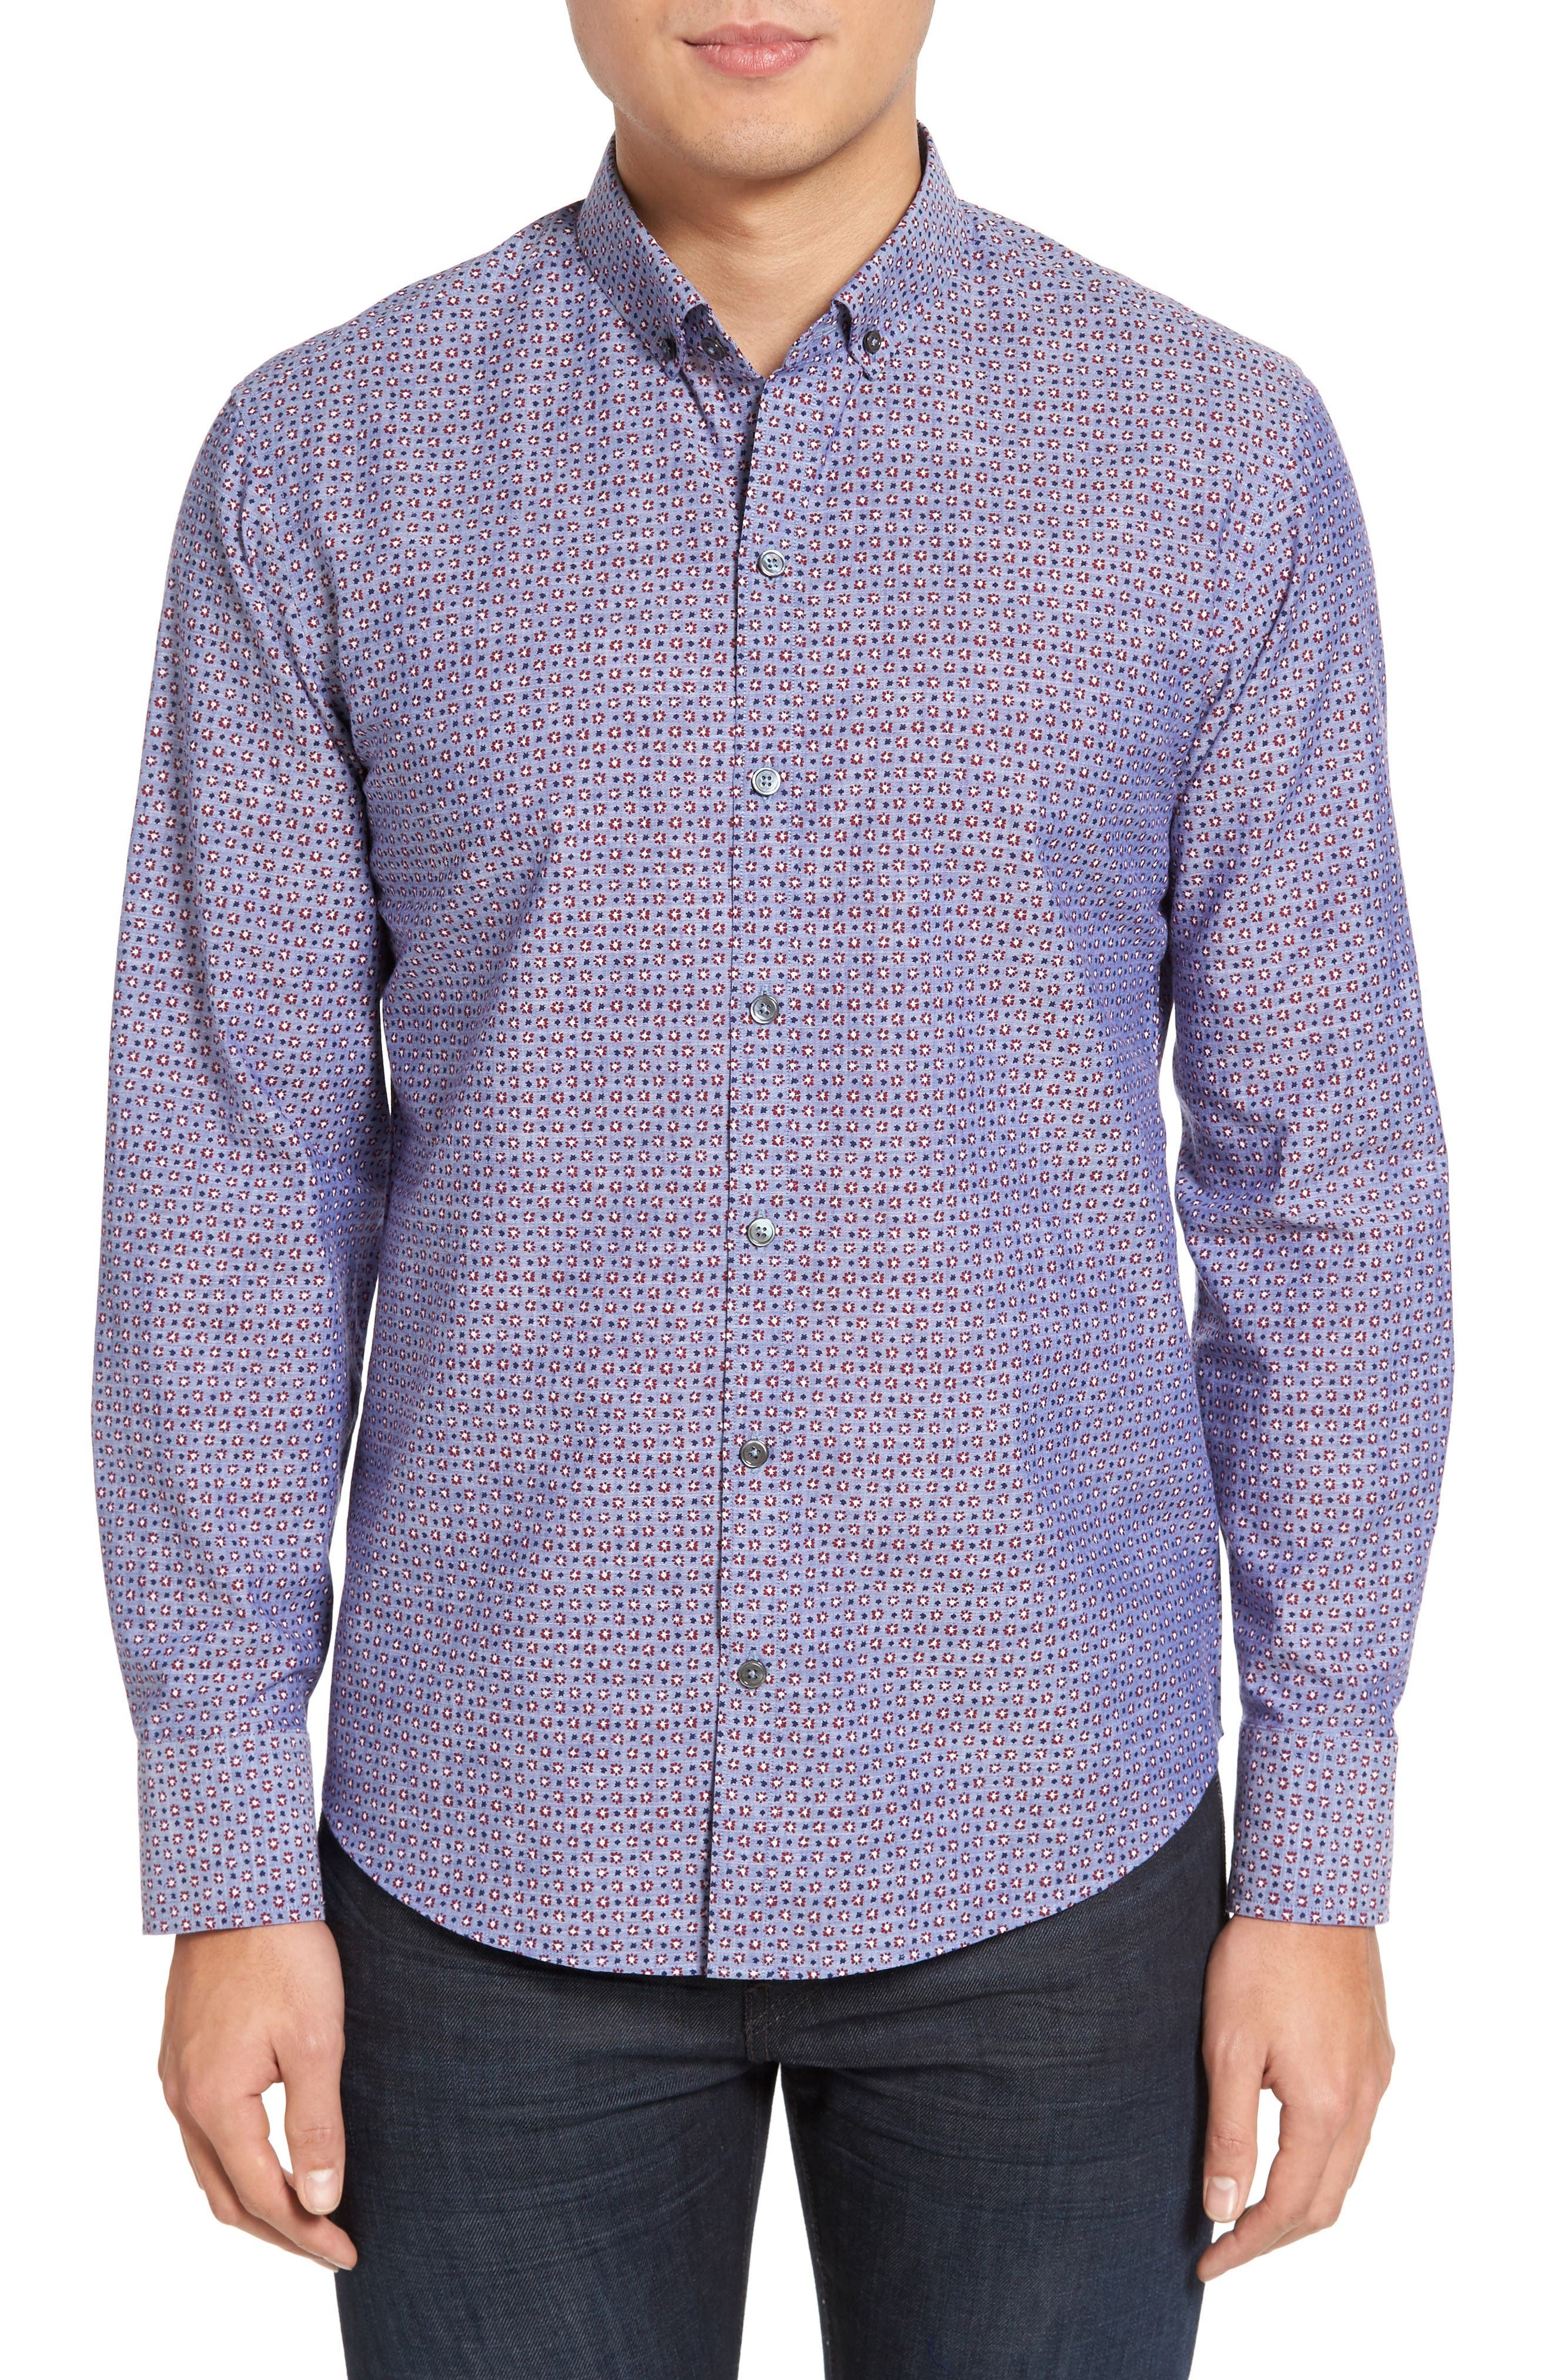 Alternate Image 1 Selected - Zachary Prell Chernow Trim Fit Print Sport Shirt